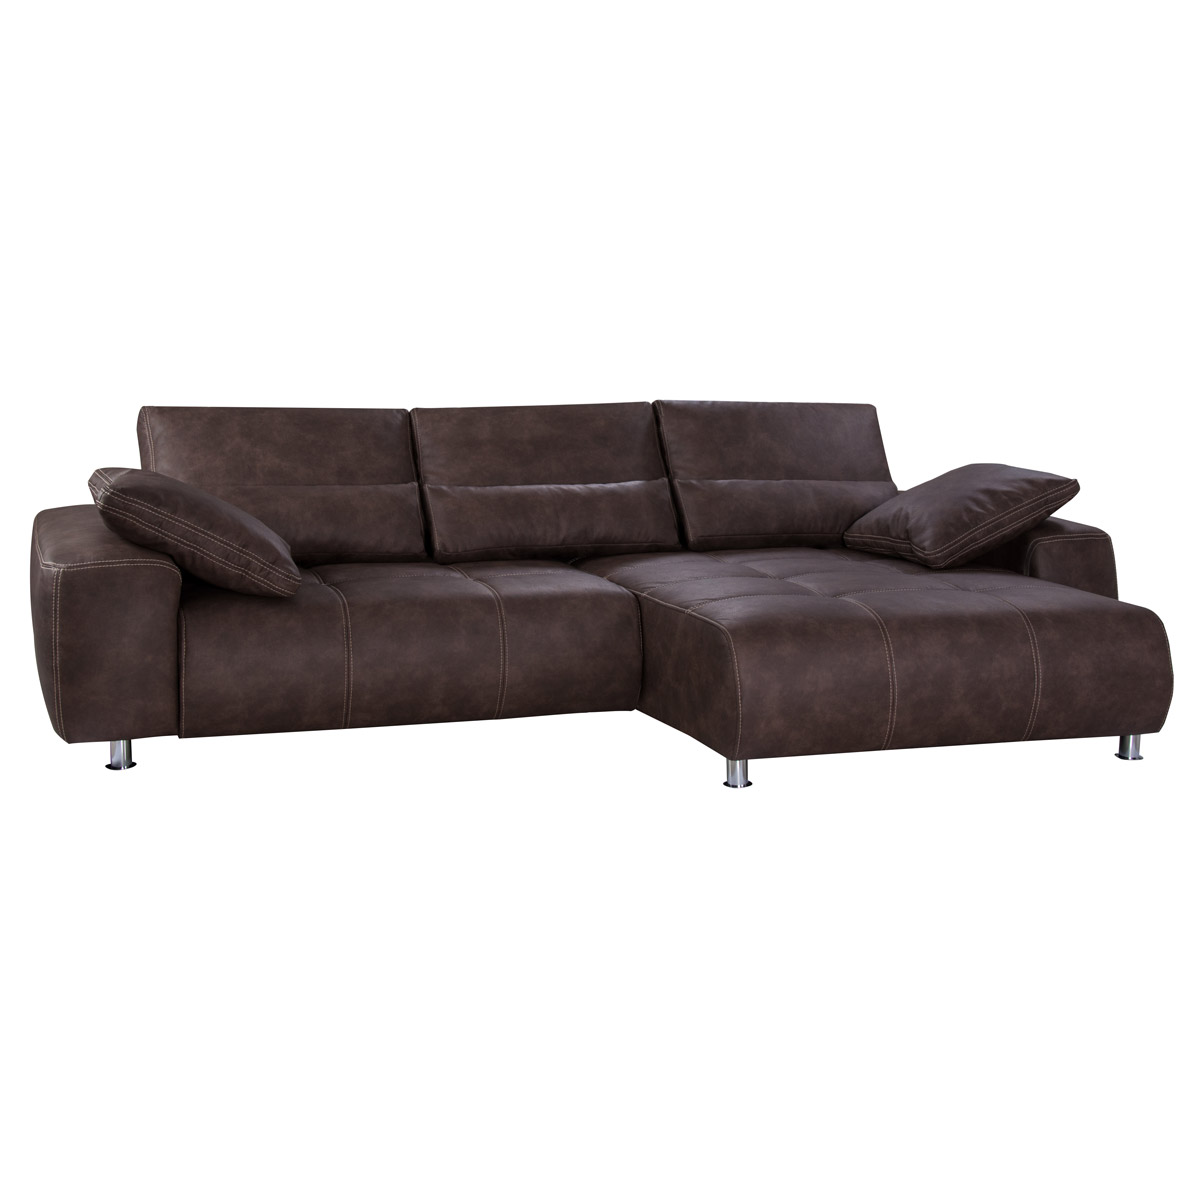 ecksofa briatore darkbrown braun schlafsofa mit bettkasten boxspring federung ebay. Black Bedroom Furniture Sets. Home Design Ideas